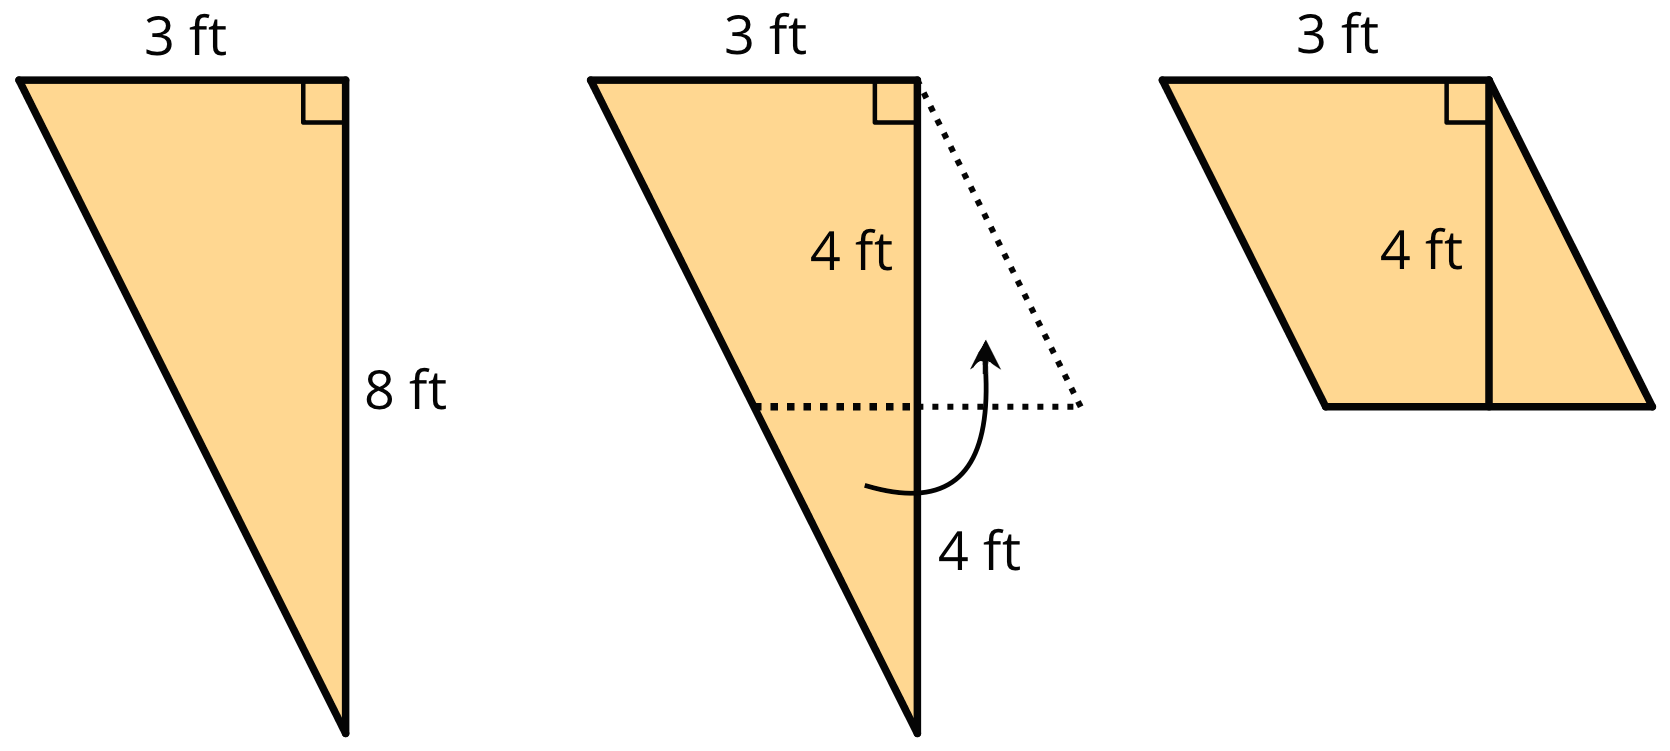 A triangle with one side labeled 3 feet and another side labeled 8 feet. A second image displays the same triangle with a dashed line bisecting the triangle so the side that was labeled 8 feet is now two pieces, each labeled 4 feet. An arrow indicates that the resulting smaller portion is rotated to create a parallelogram with a base of 3 feet and a height of 4 feet.